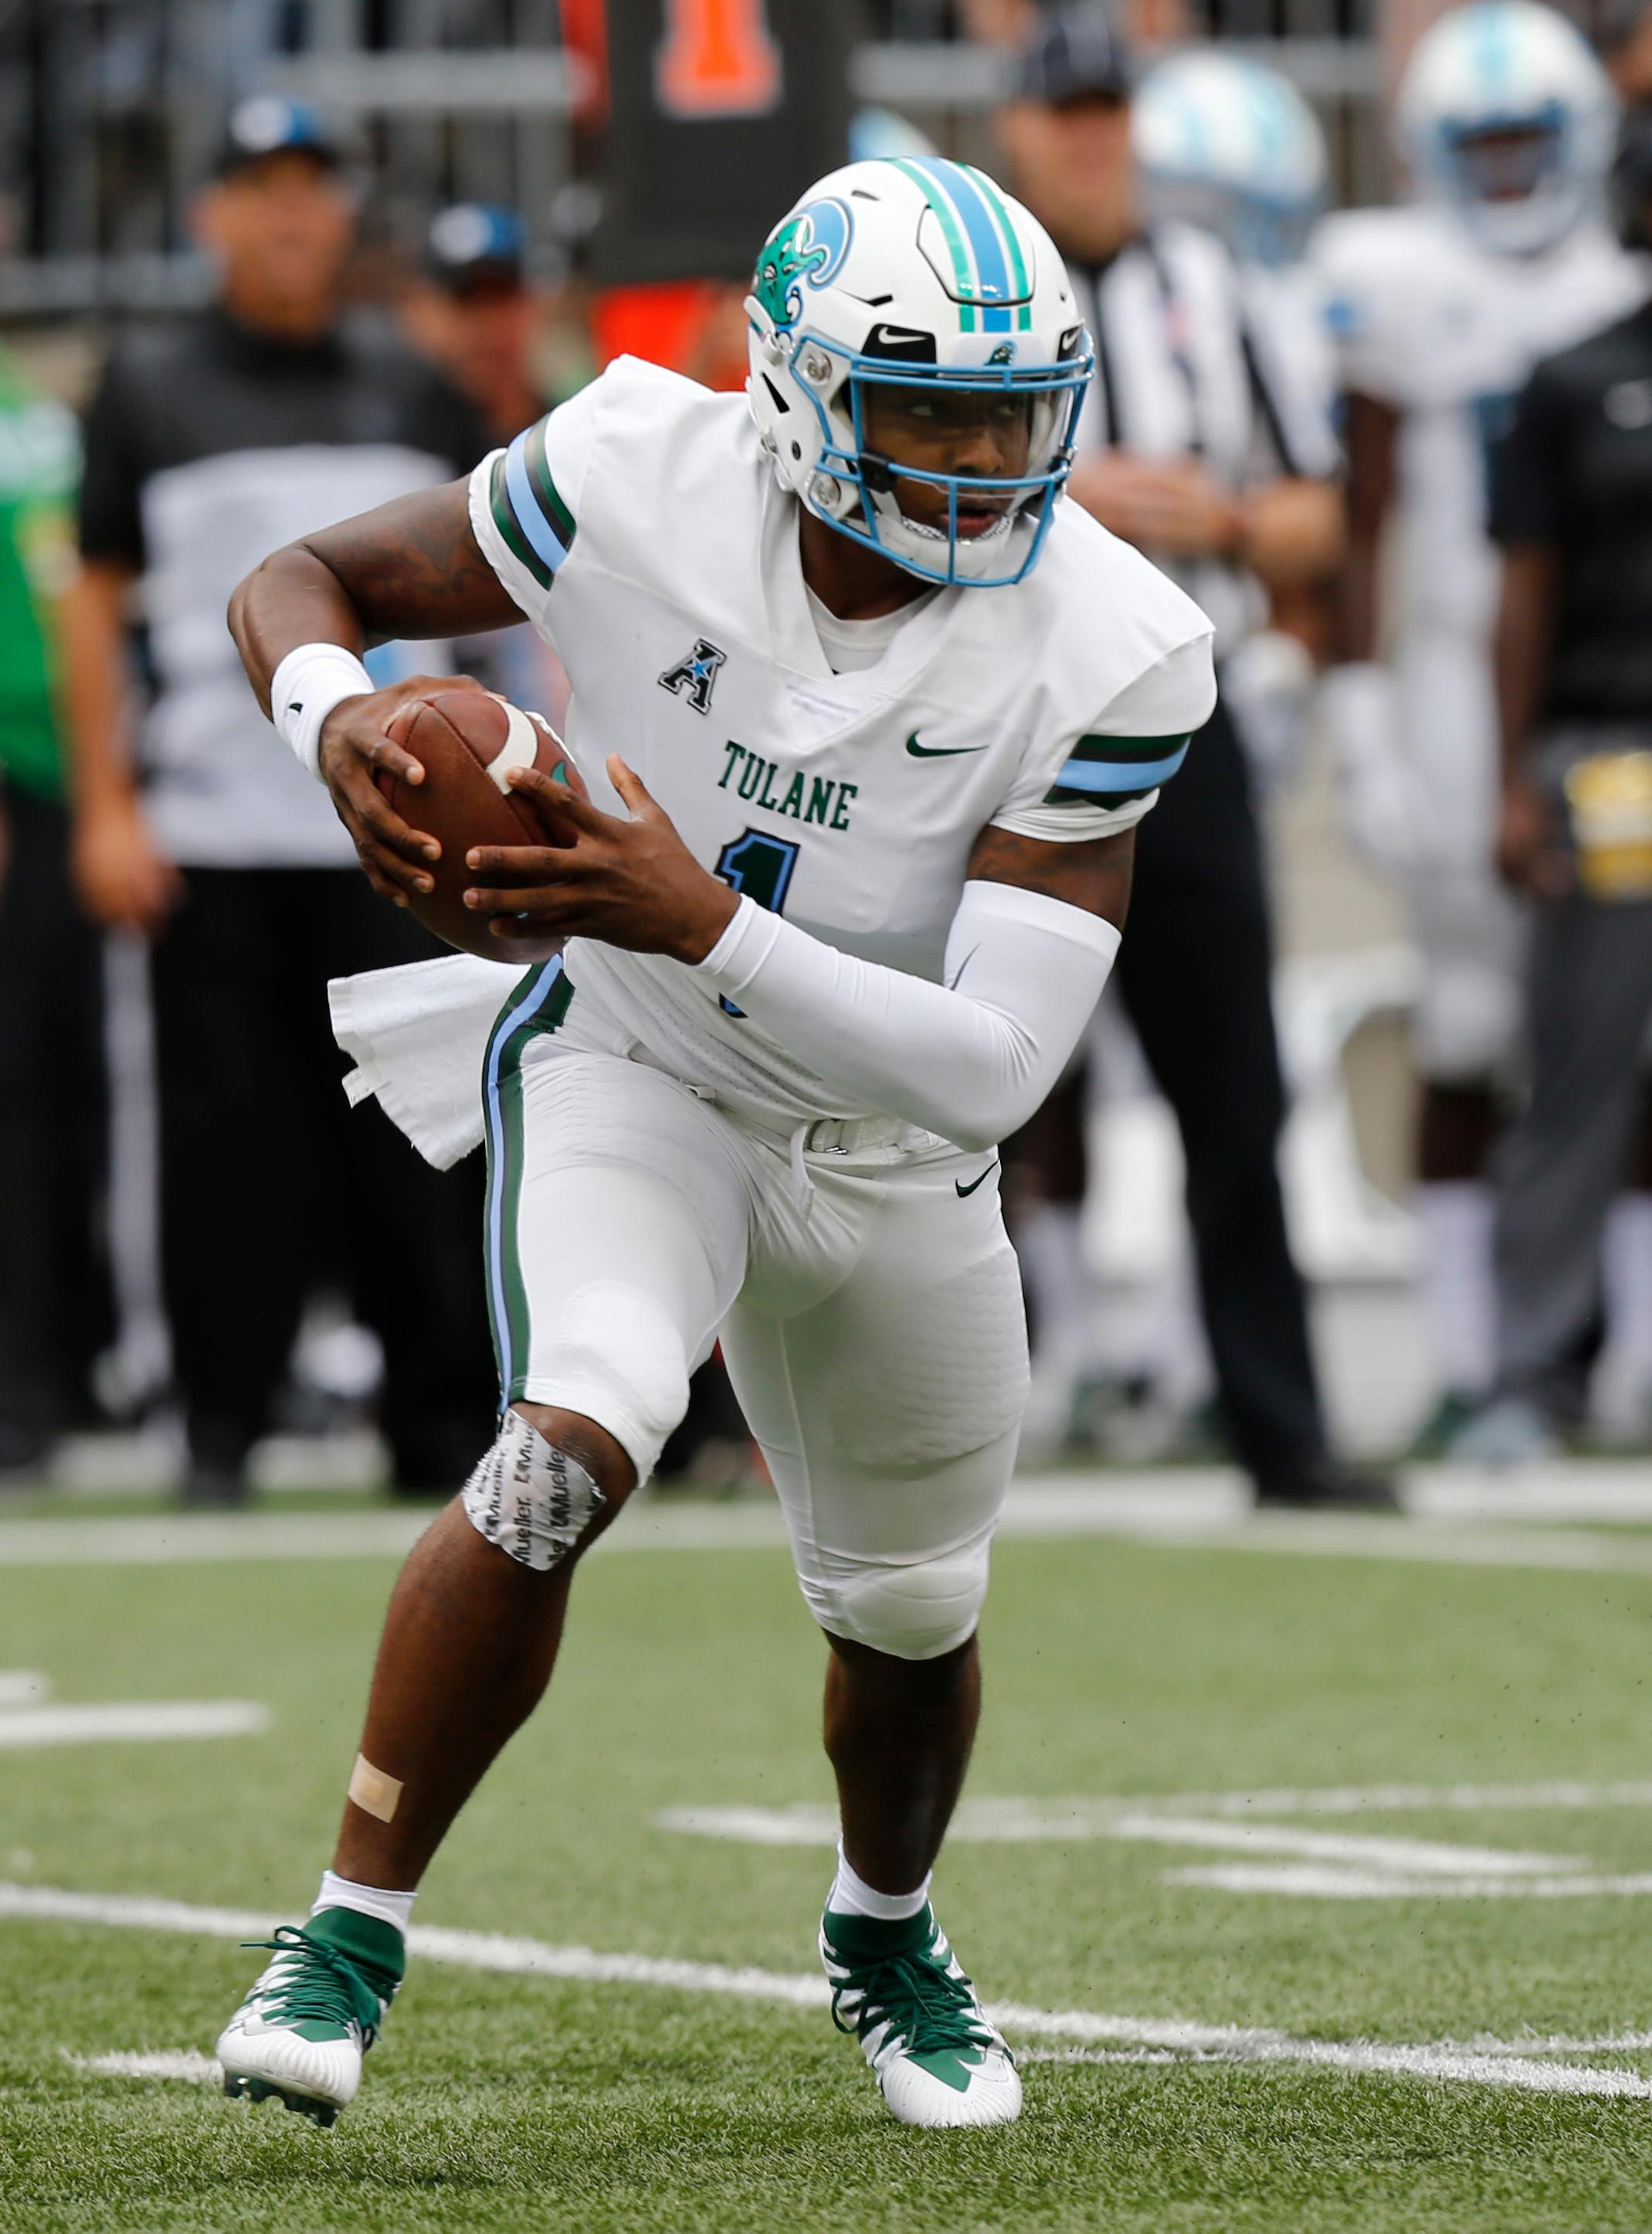 Tulane quarterback Jonathan Banks looks for an opening to run through against Ohio State during the first half of an NCAA college football game Saturday, Sept. 22, 2018, in Columbus, Ohio. (AP Photo/Jay LaPrete)